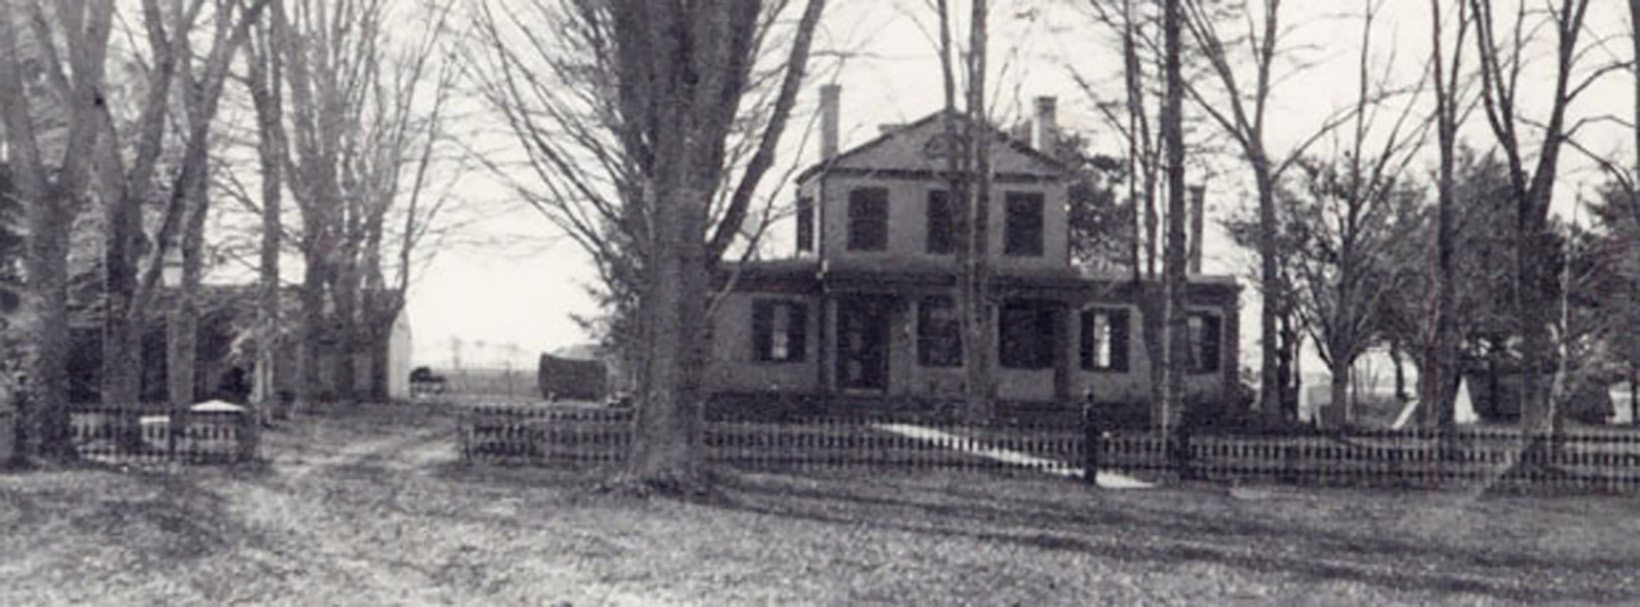 Landmarks: Marvin-Griffin House